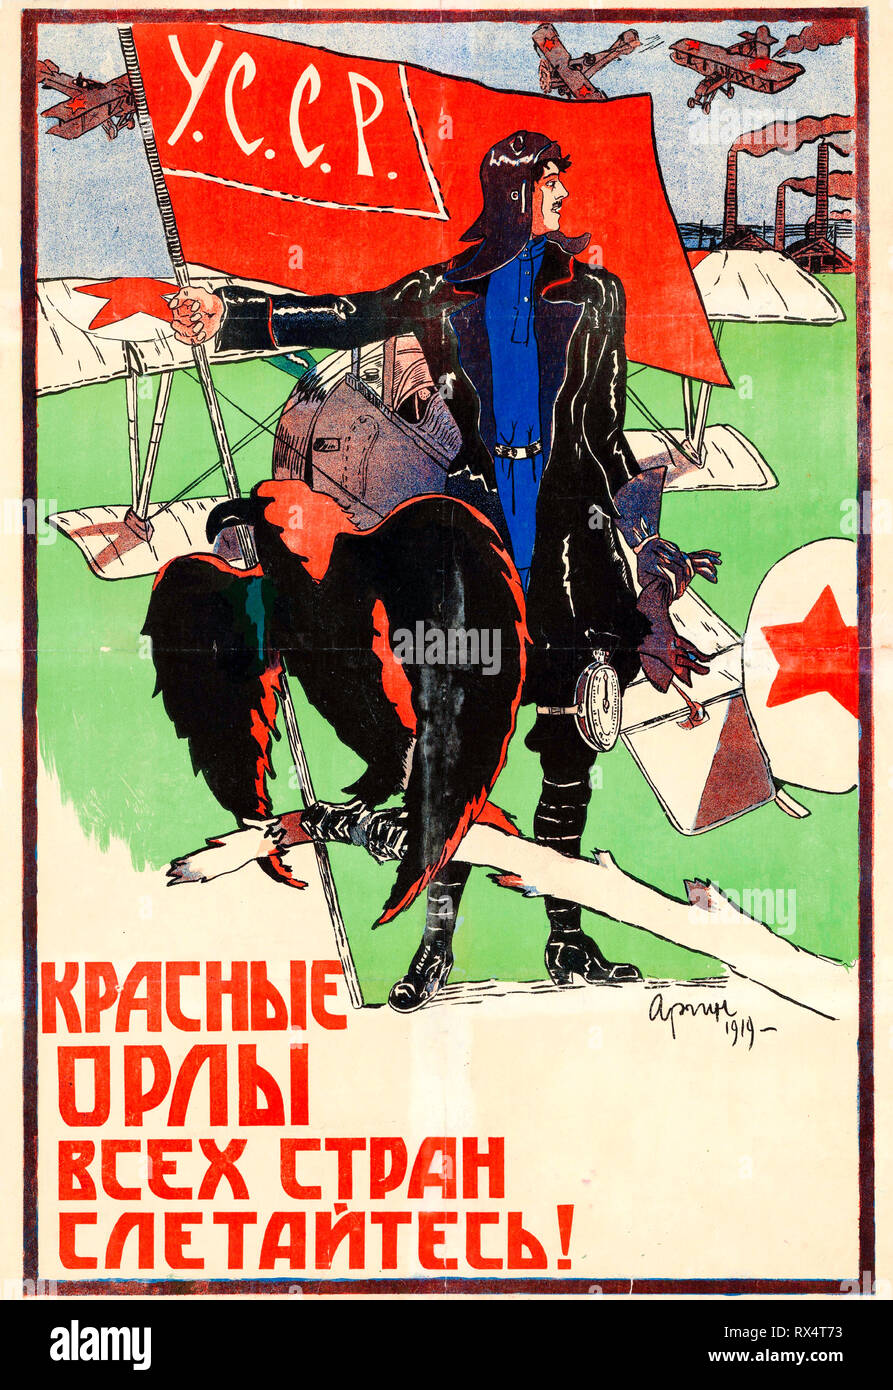 Soviet poster, Red Eagles of all countries, fly!, 1919 - Stock Image